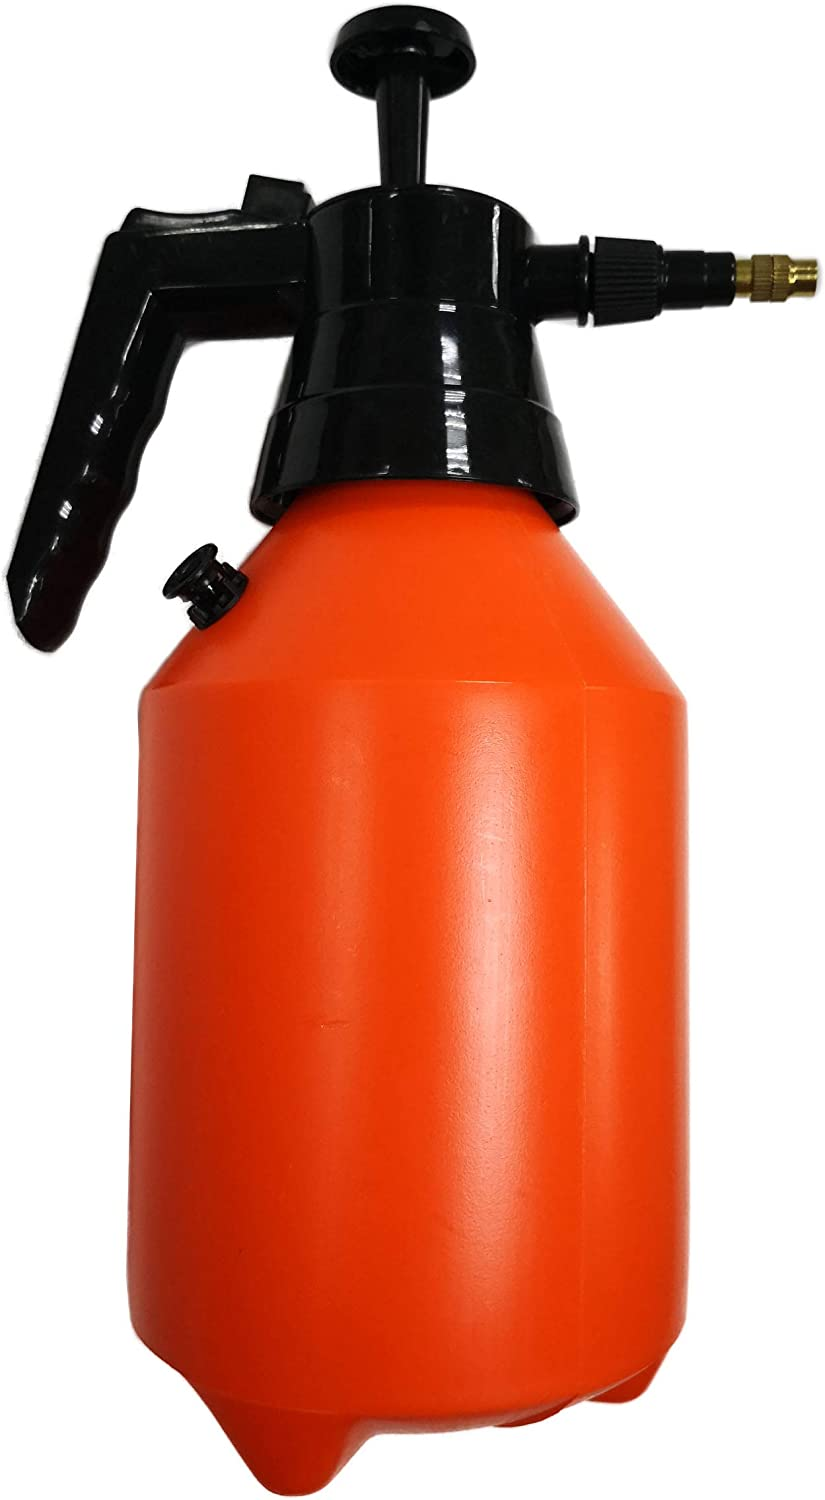 Polyte One Hand Pressure Sprayer for Lawn, Garden, Pest Control, 50 oz / 1.5 Liter, 1 Pack